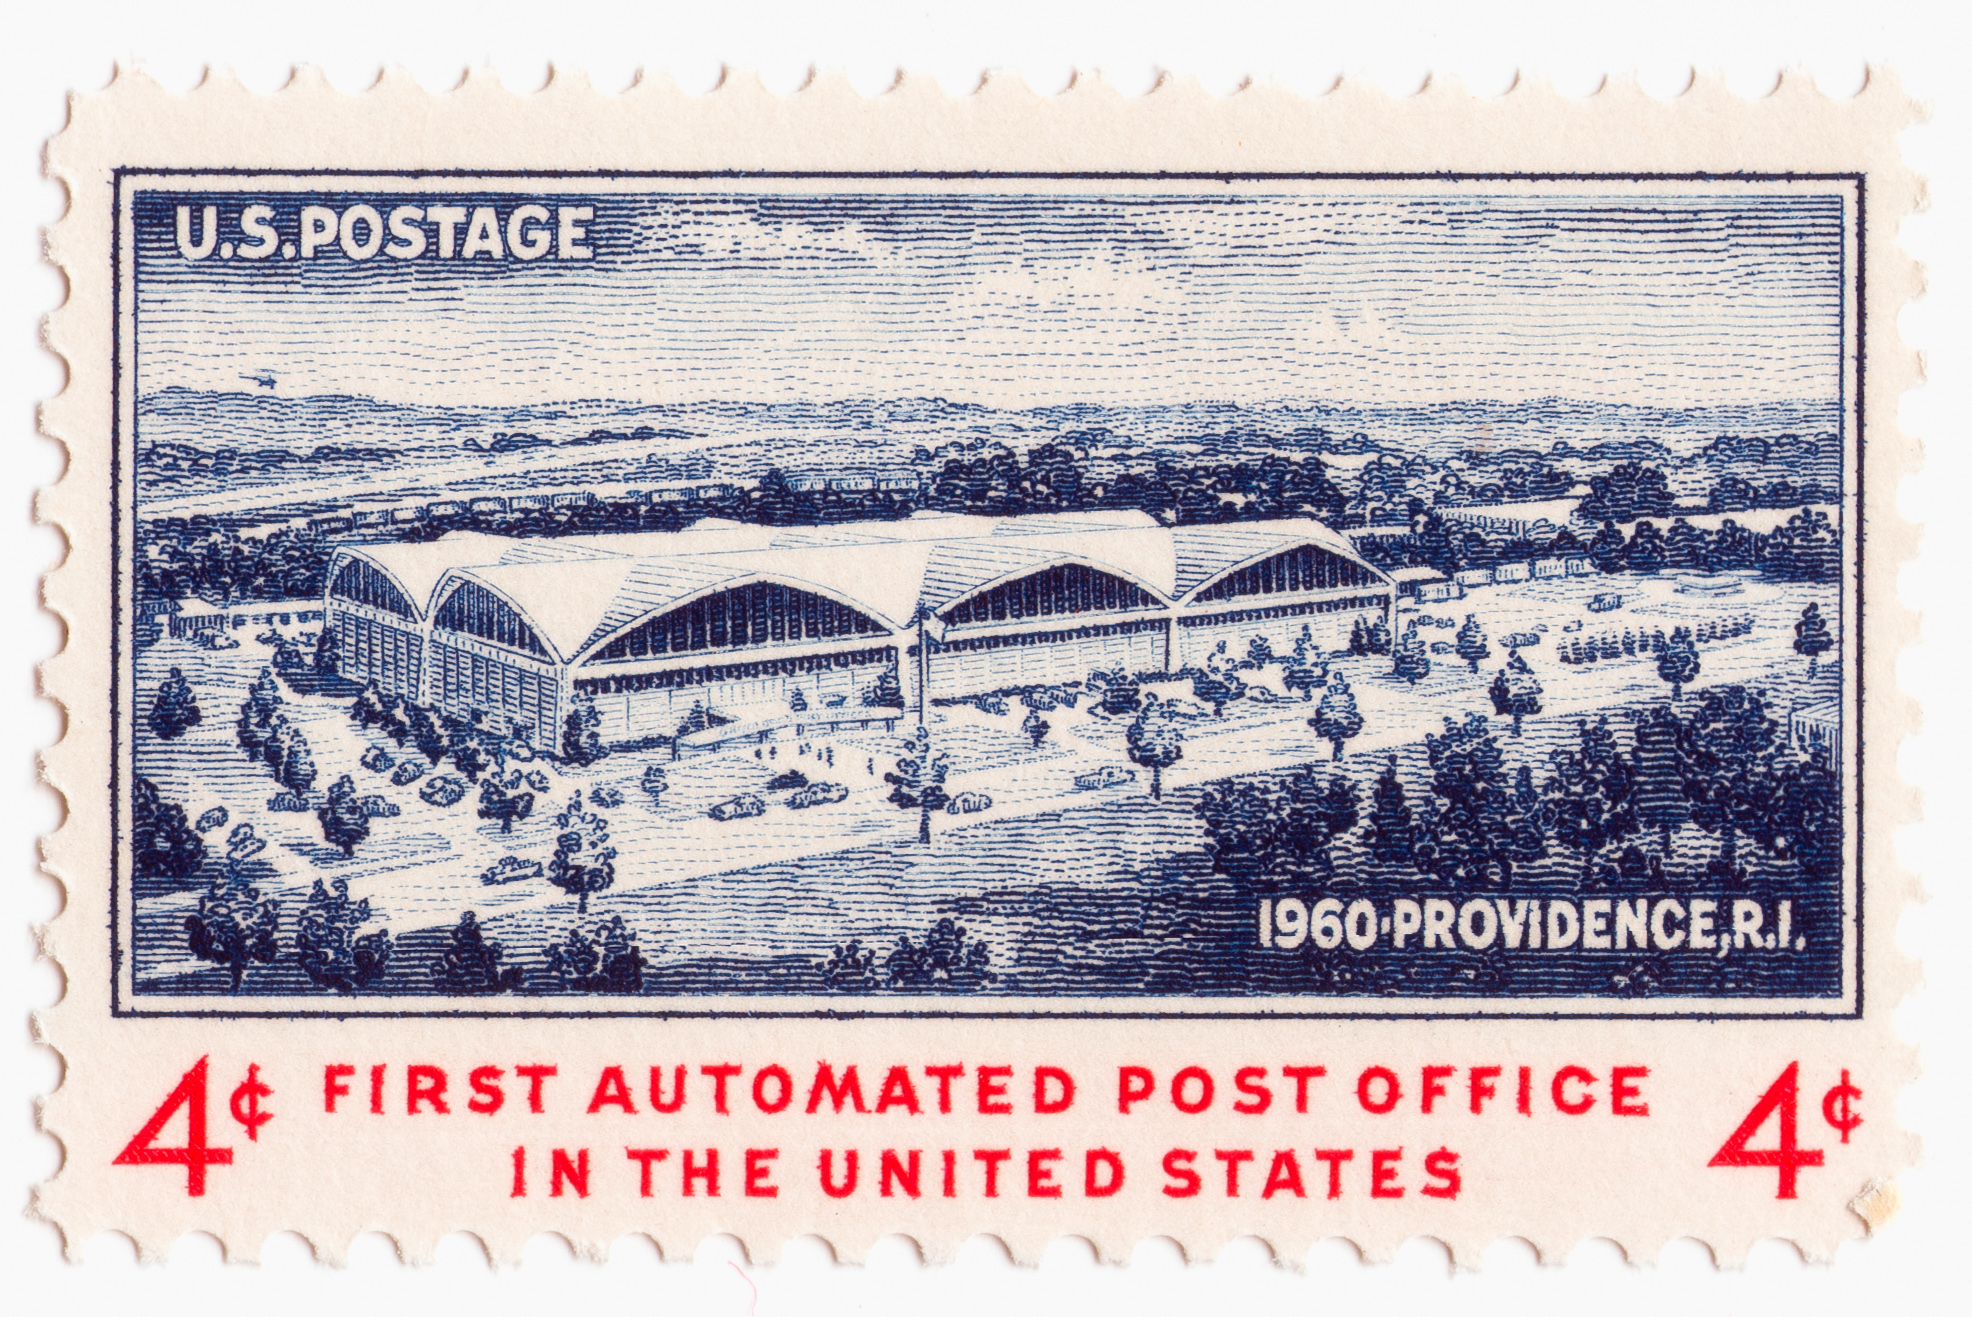 First Automated Post Office (1960)